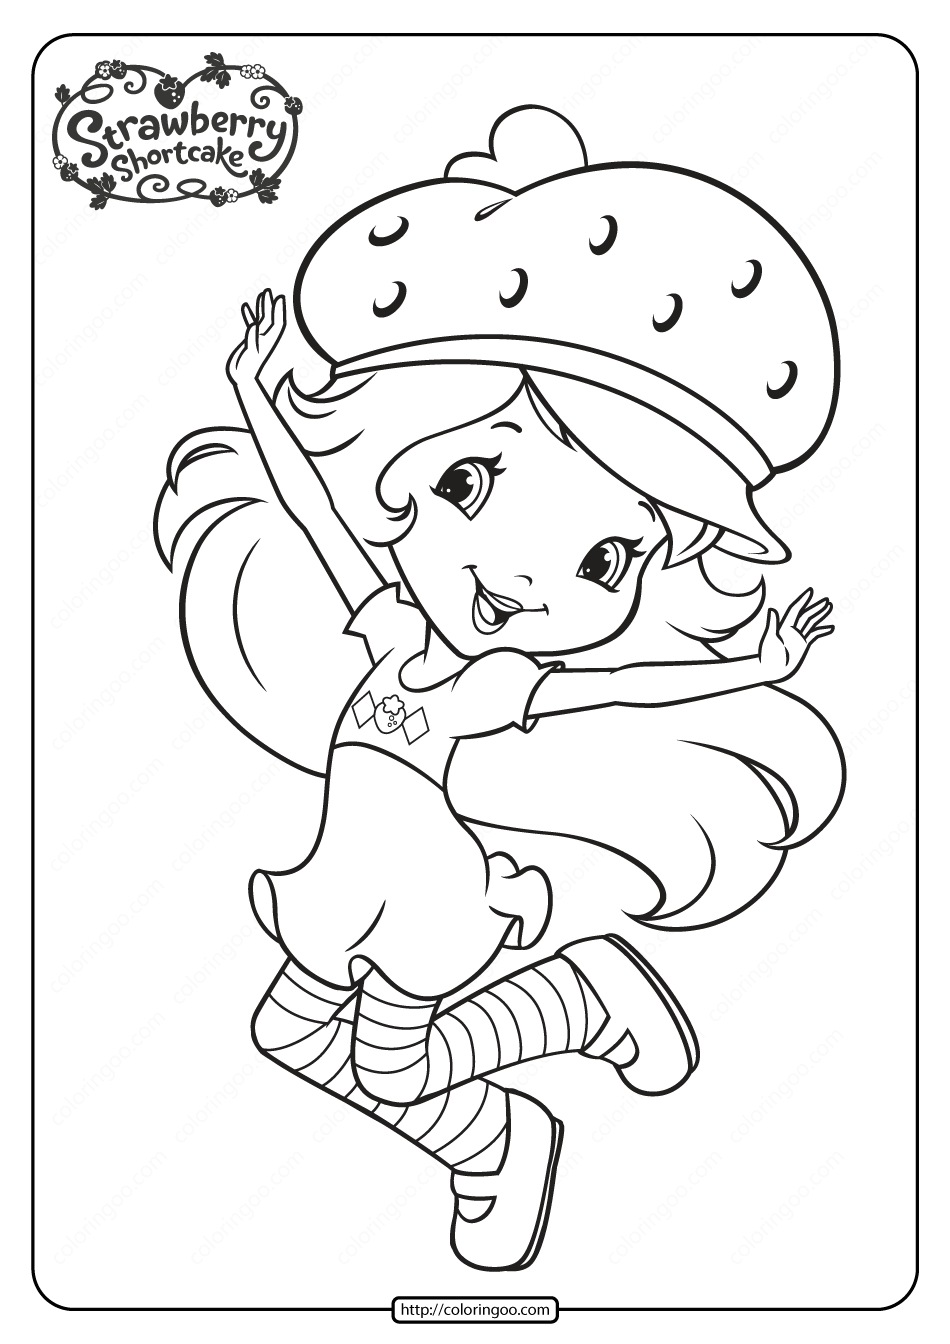 Printable Strawberry Shortcake Coloring Pages 14 Strawberry Shortcake Coloring Pages Coloring Pages Strawberry Shortcake Cartoon [ 1344 x 950 Pixel ]